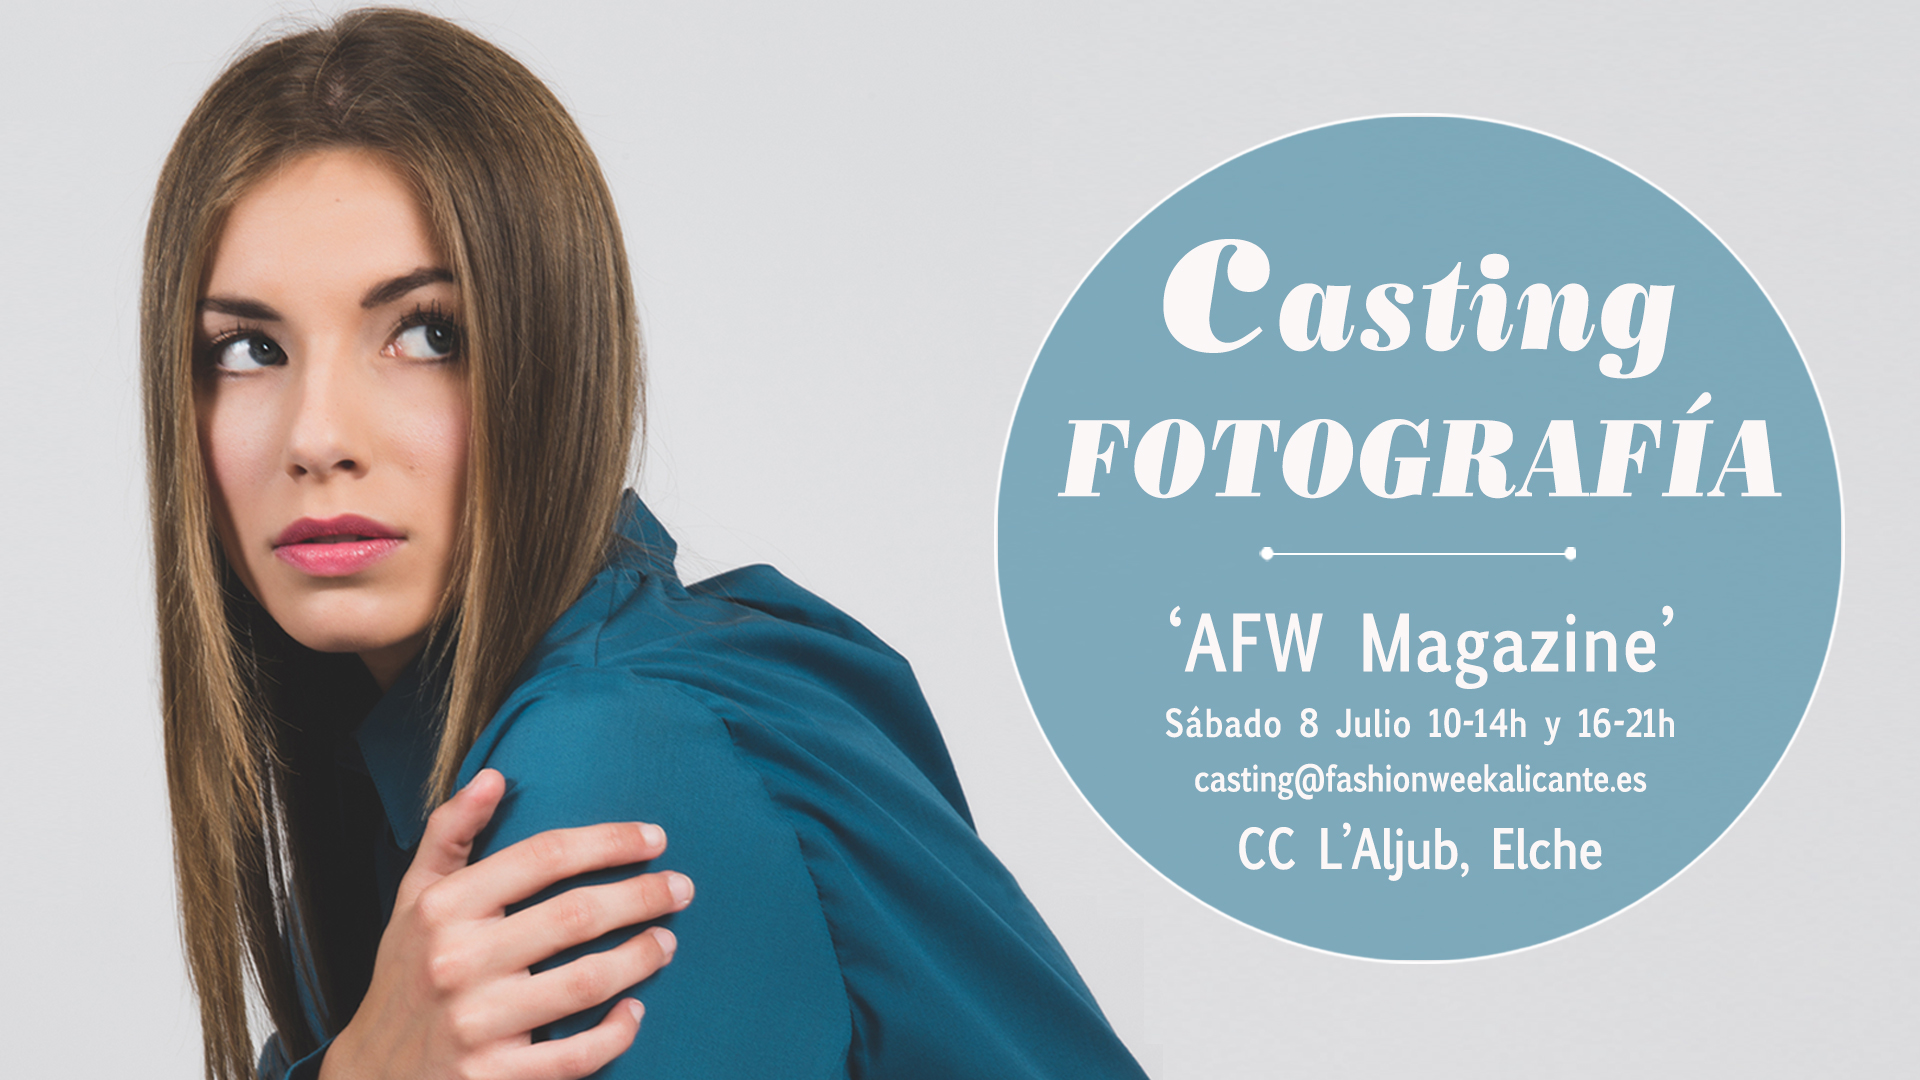 Casting Modelos Fotografía Alicante Fashion Week